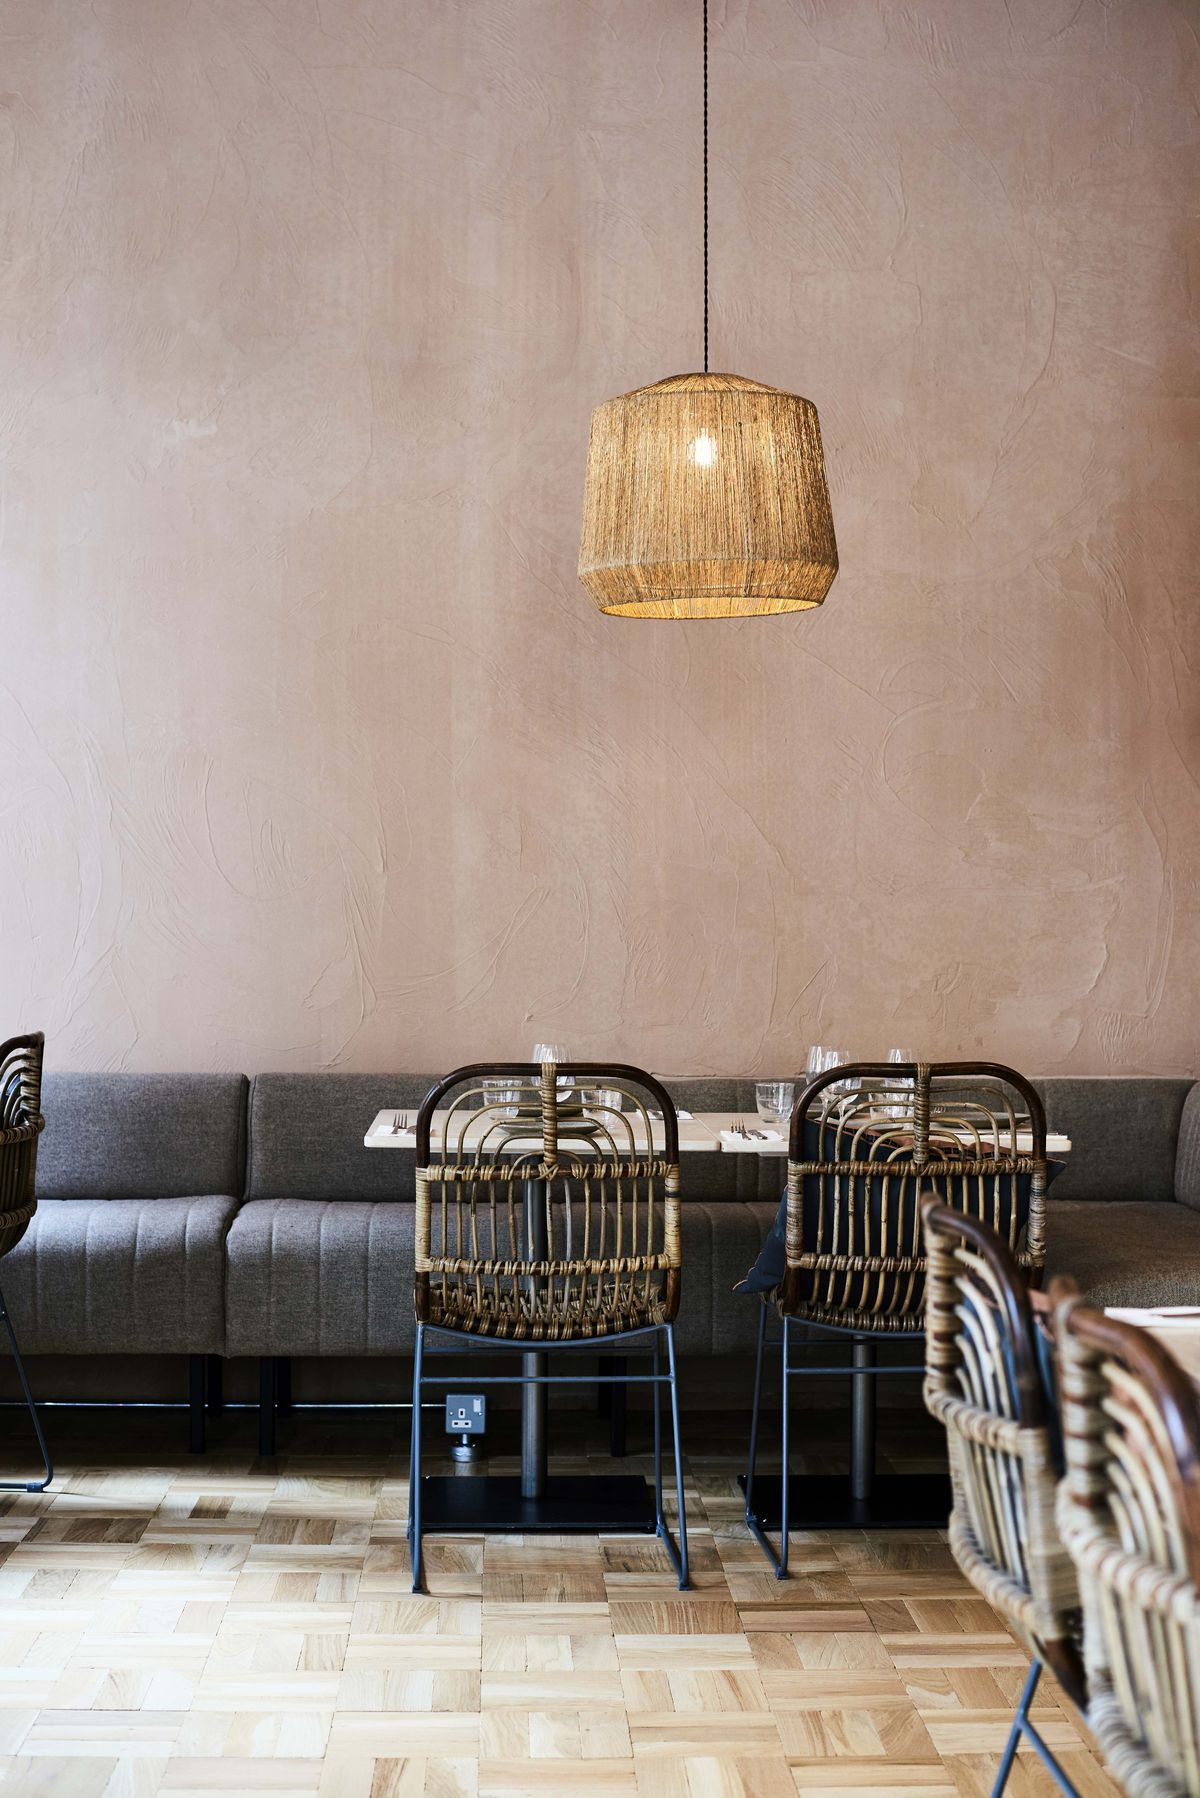 Sofa seating and wicker chairs at Caravan Coffee Roasters' new site in Fitzrovia, London